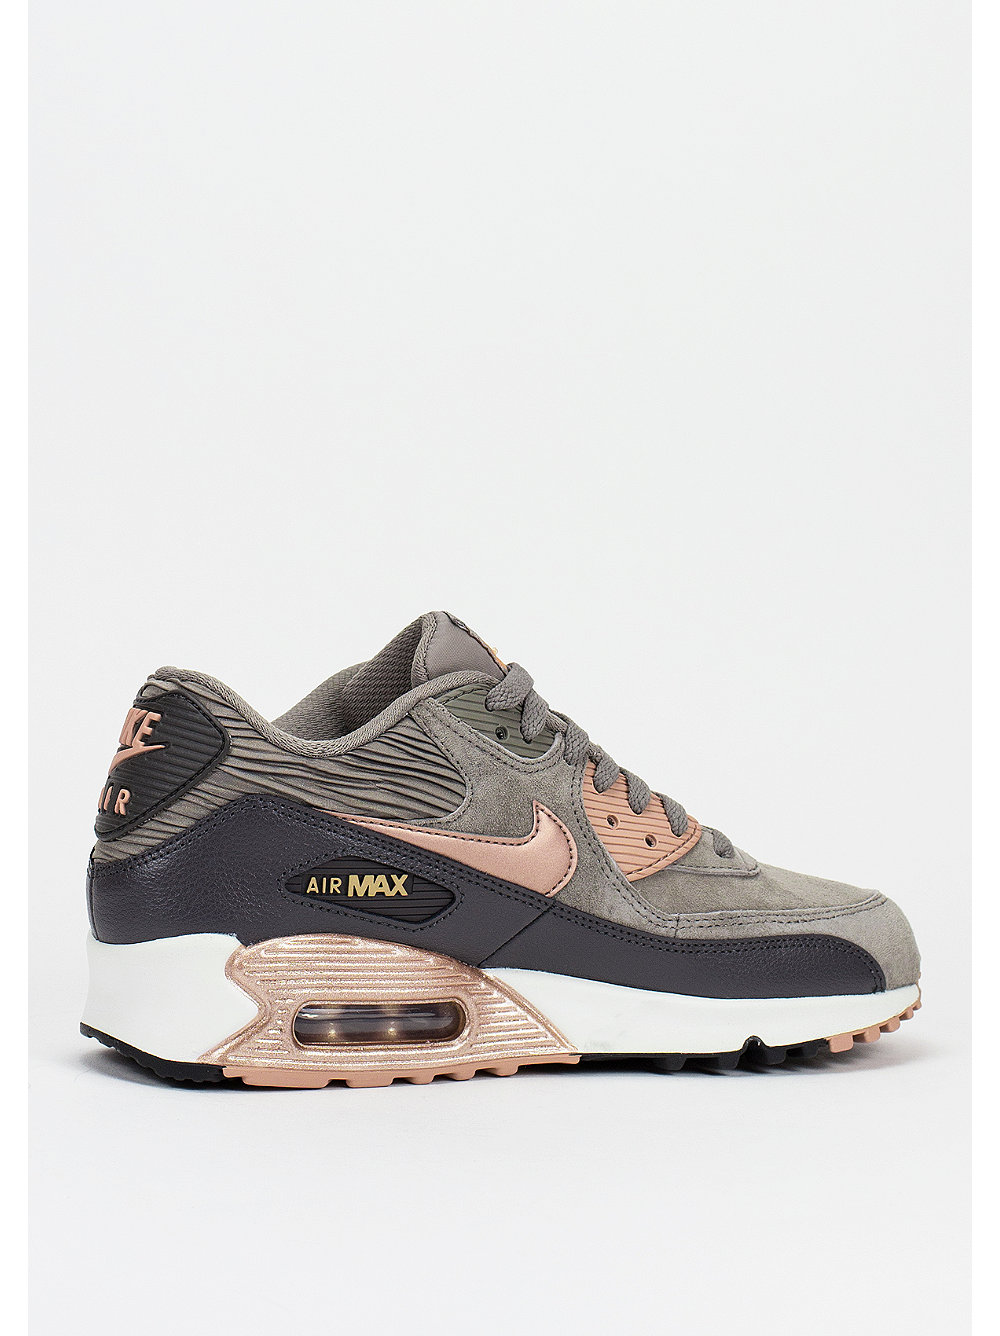 Nike Air Max 90 Ltr Metallic Bronze beardownproductions.co.uk